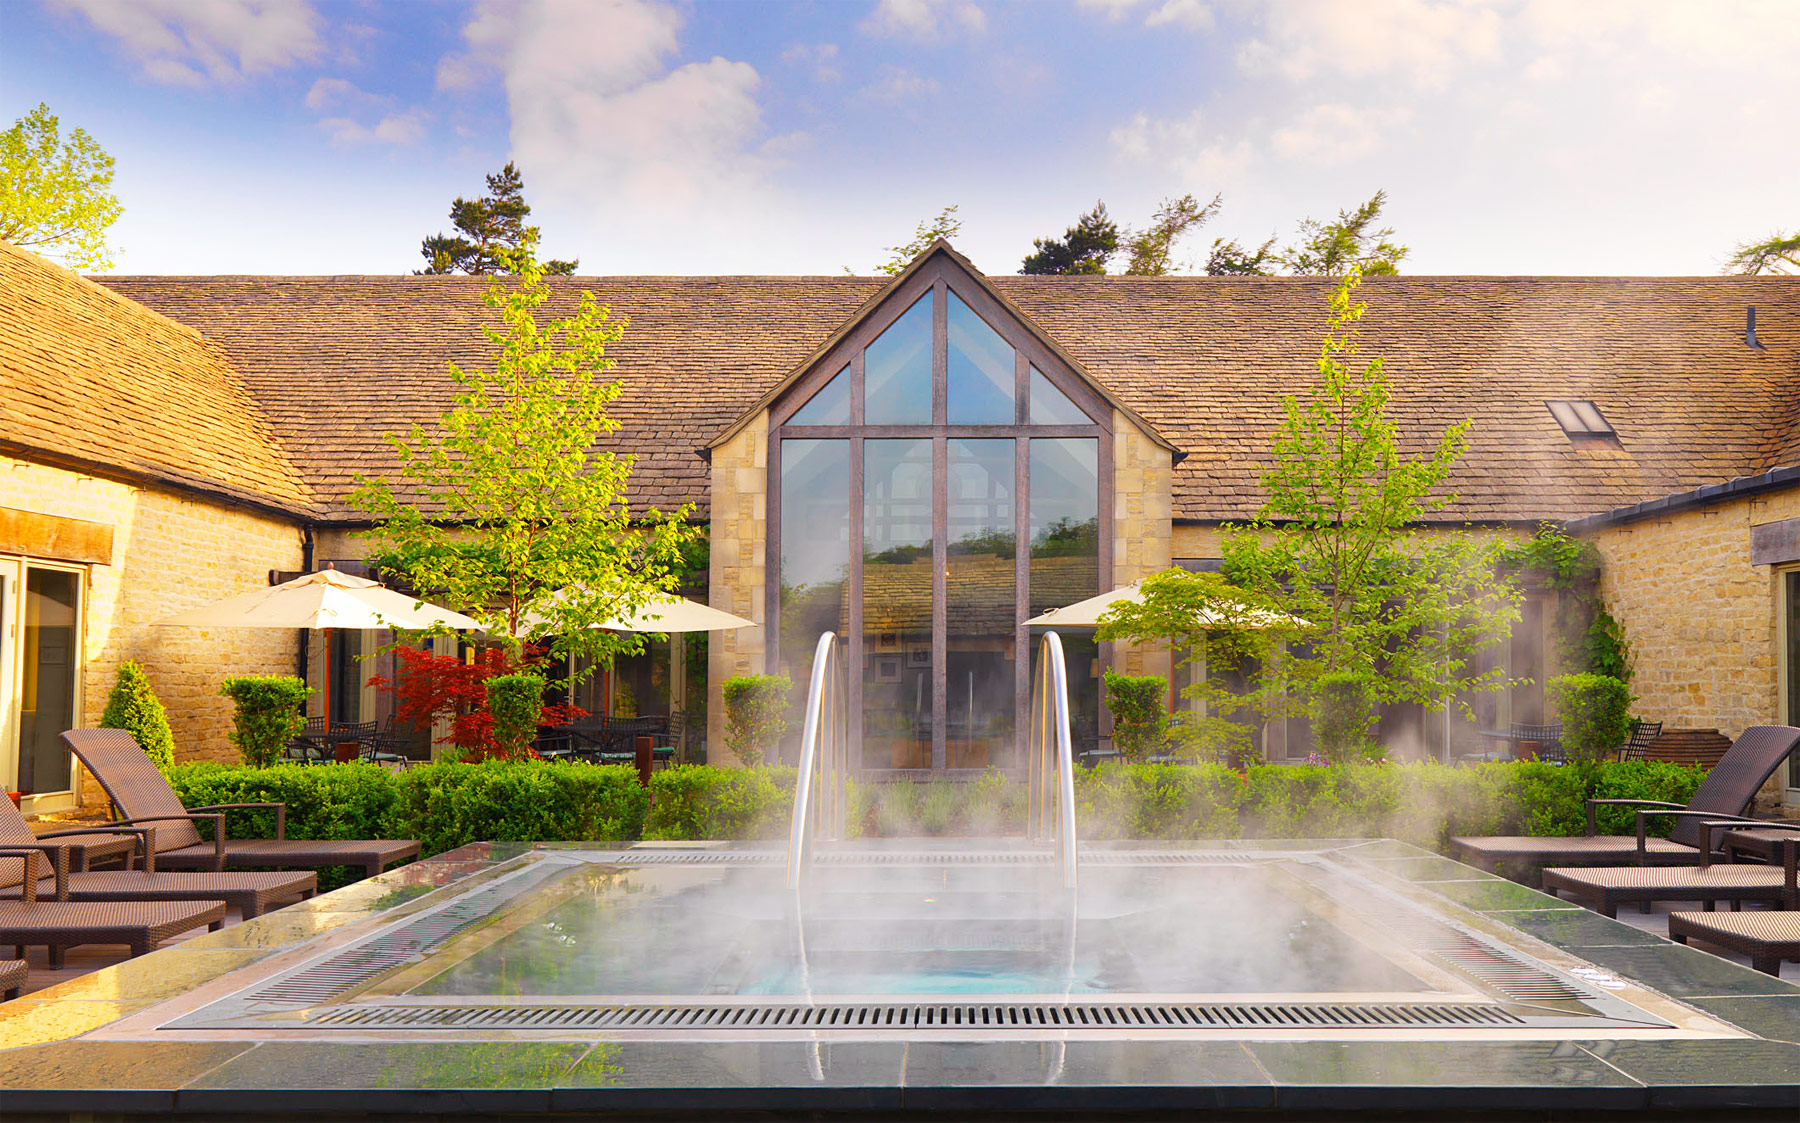 The outdoor spa pool at Calcot In the Cotswolds